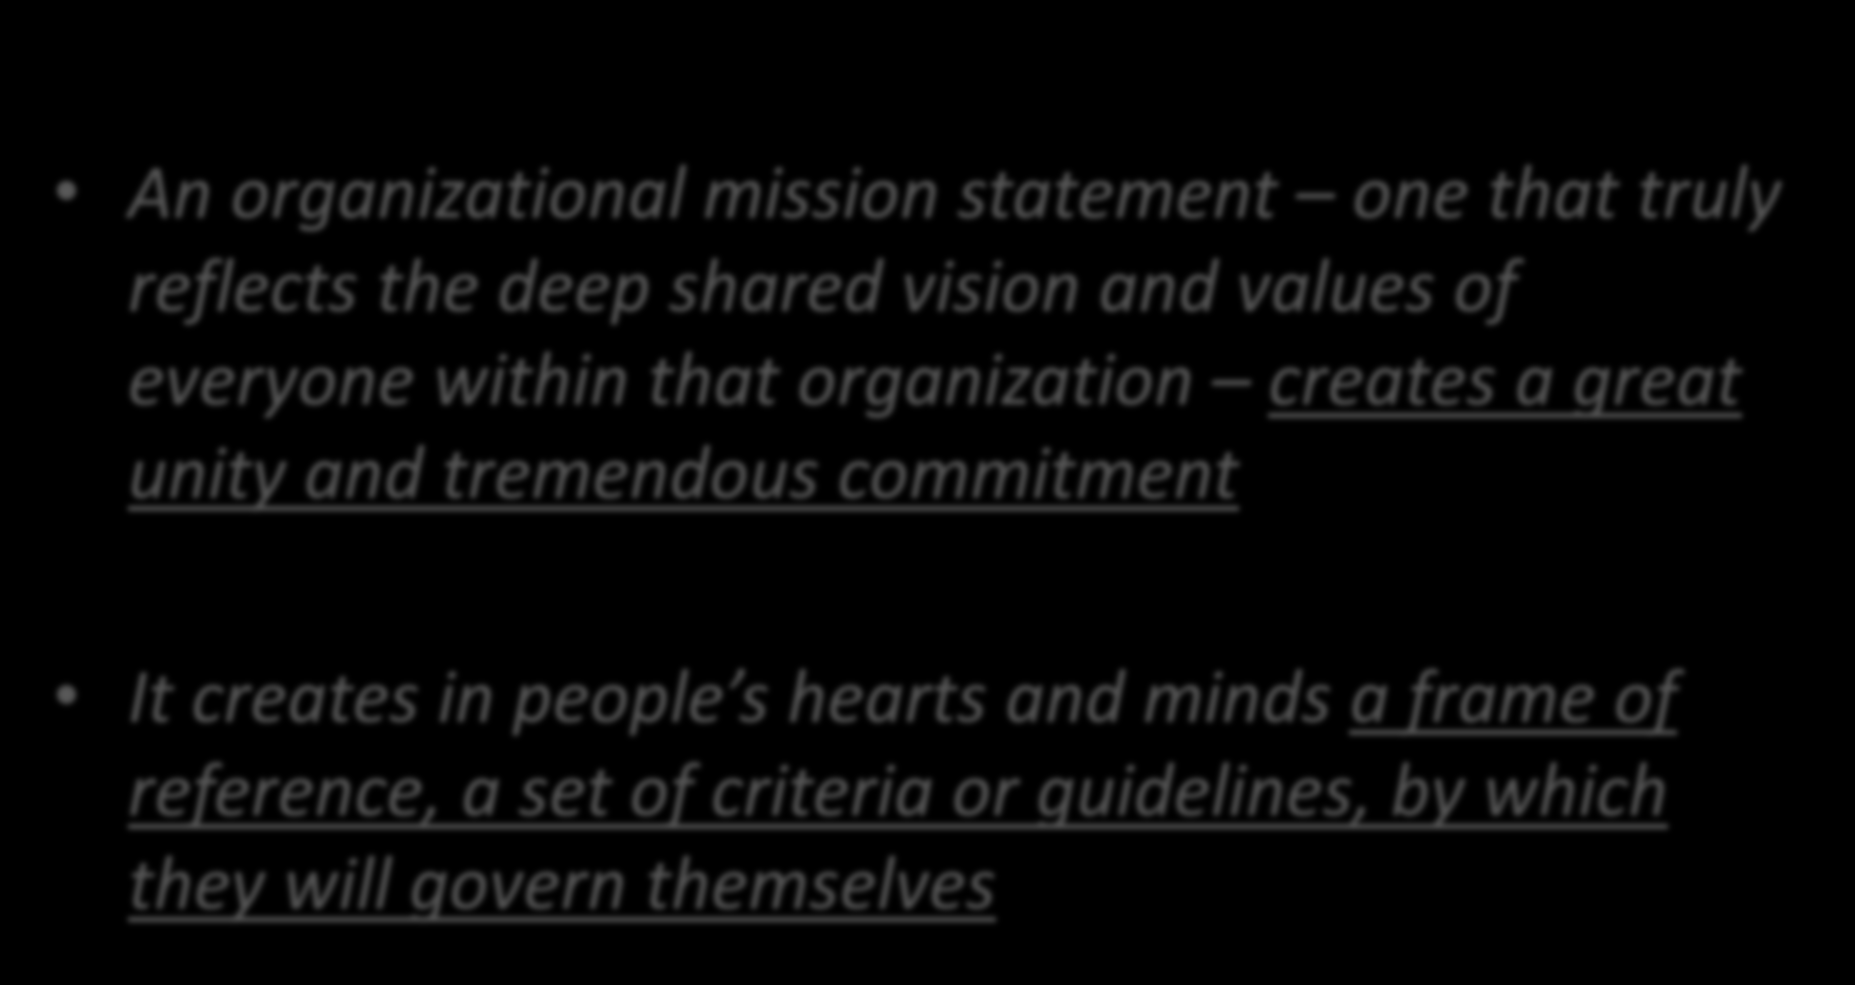 Creating a Mission Statement An organizational mission statement one that truly reflects the deep shared vision and values of everyone within that organization creates a